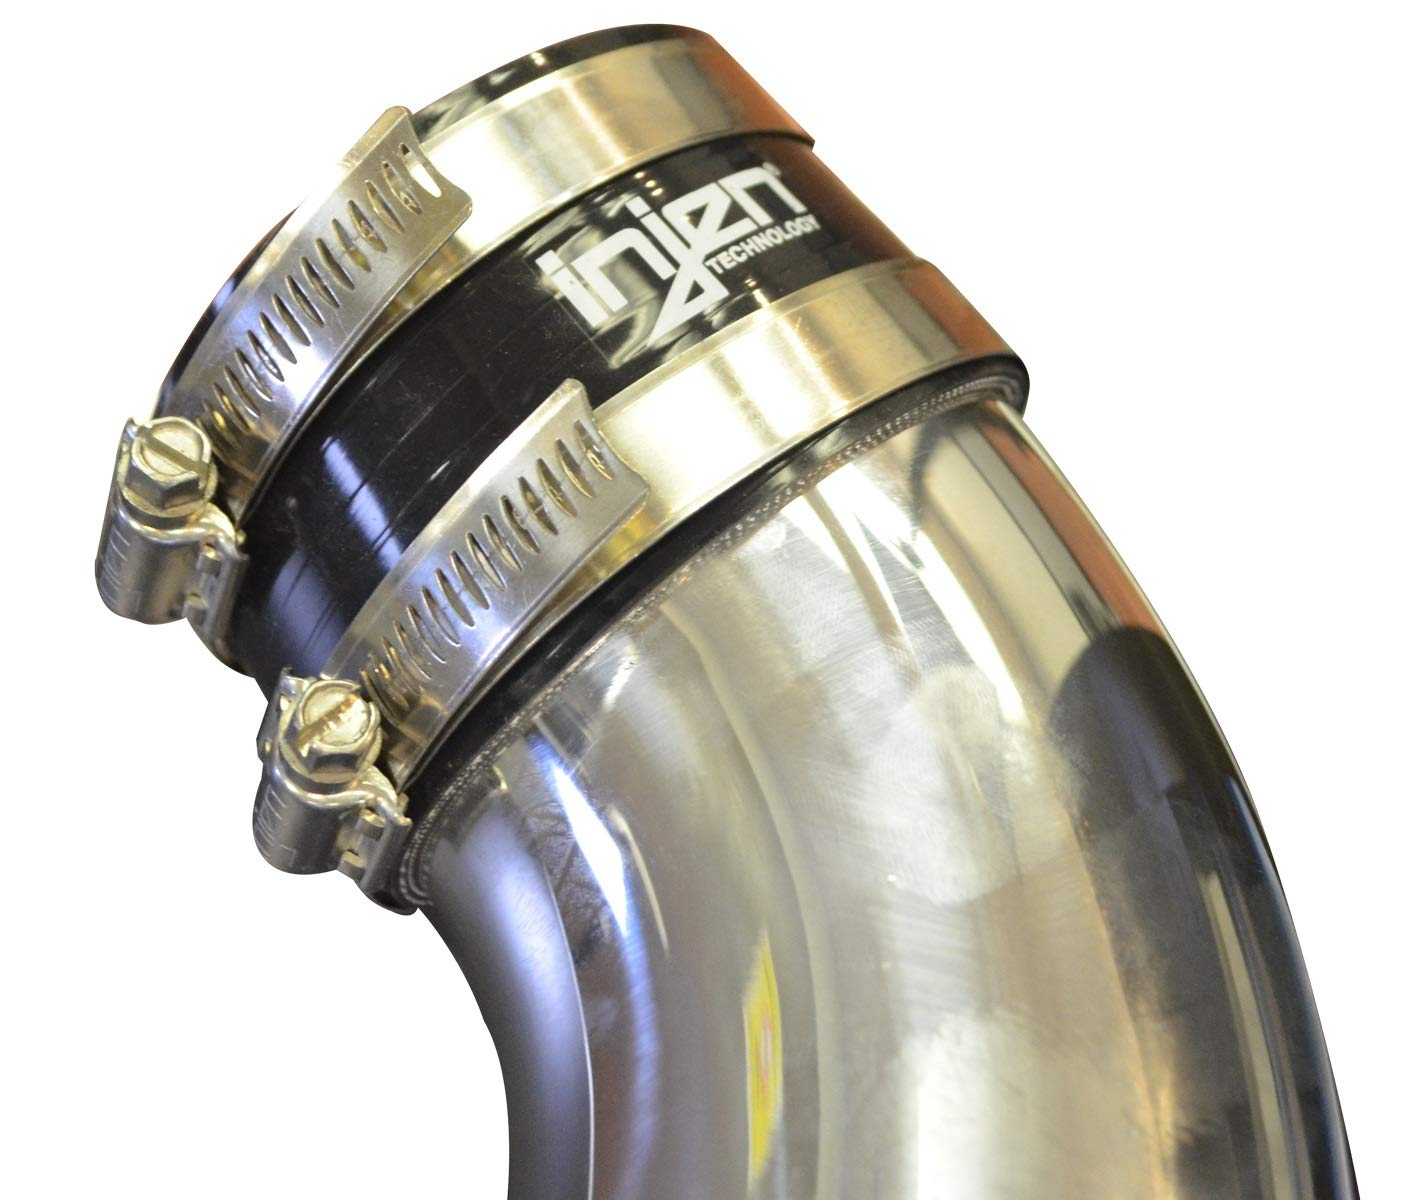 Injen PF7024P Tuned Intake with Mr Technology Air Fusion and Web